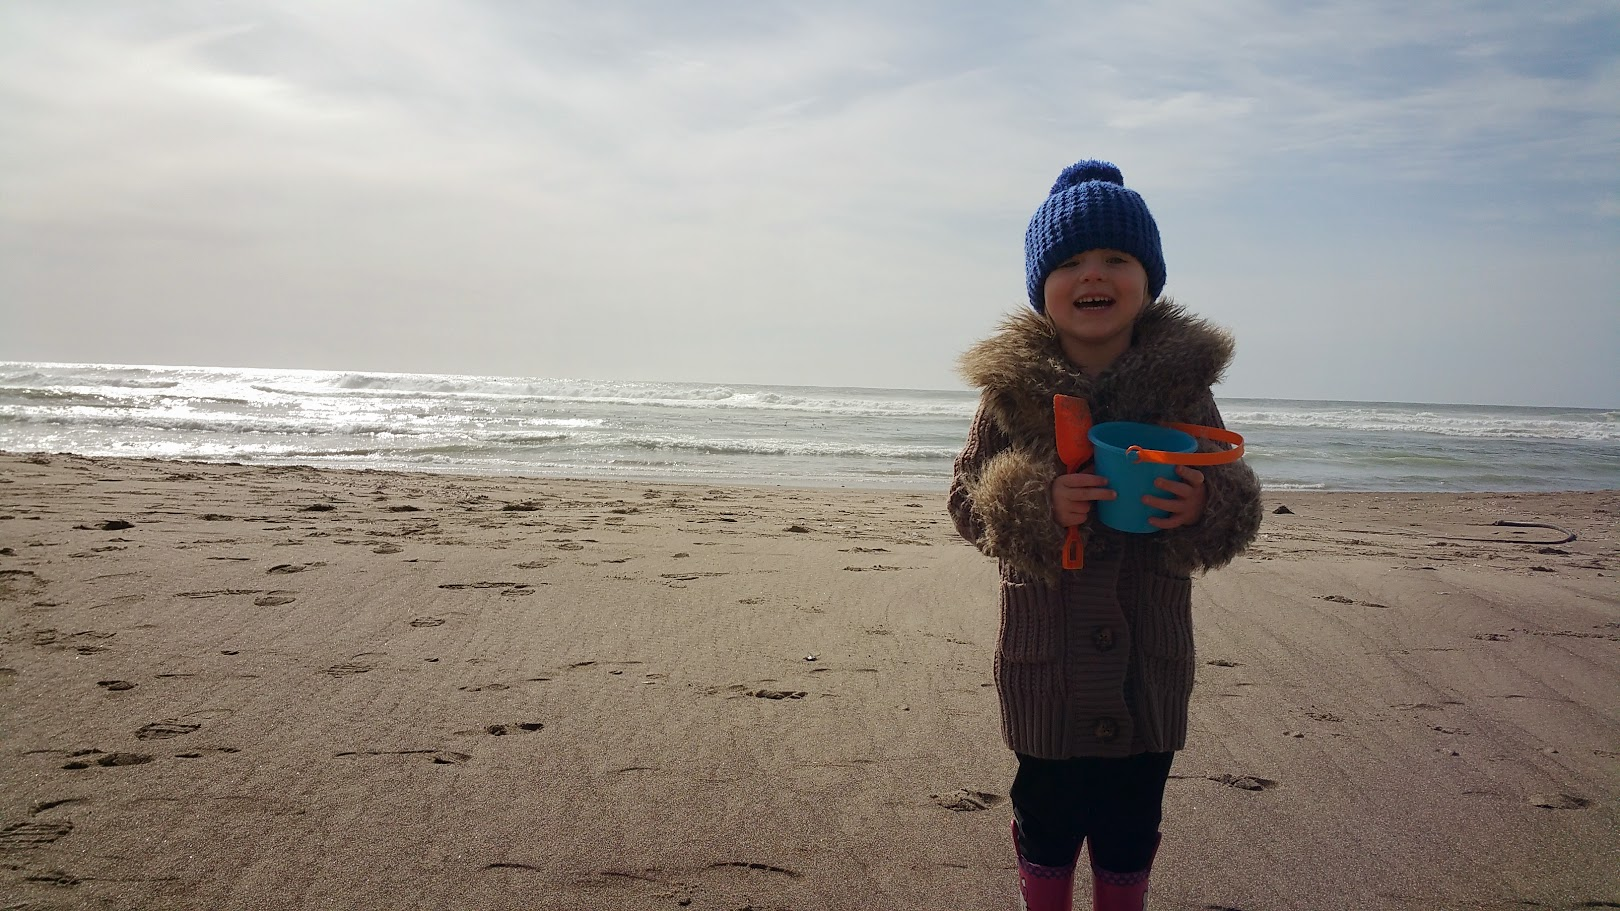 20150412_Emmna digging in the sand 3